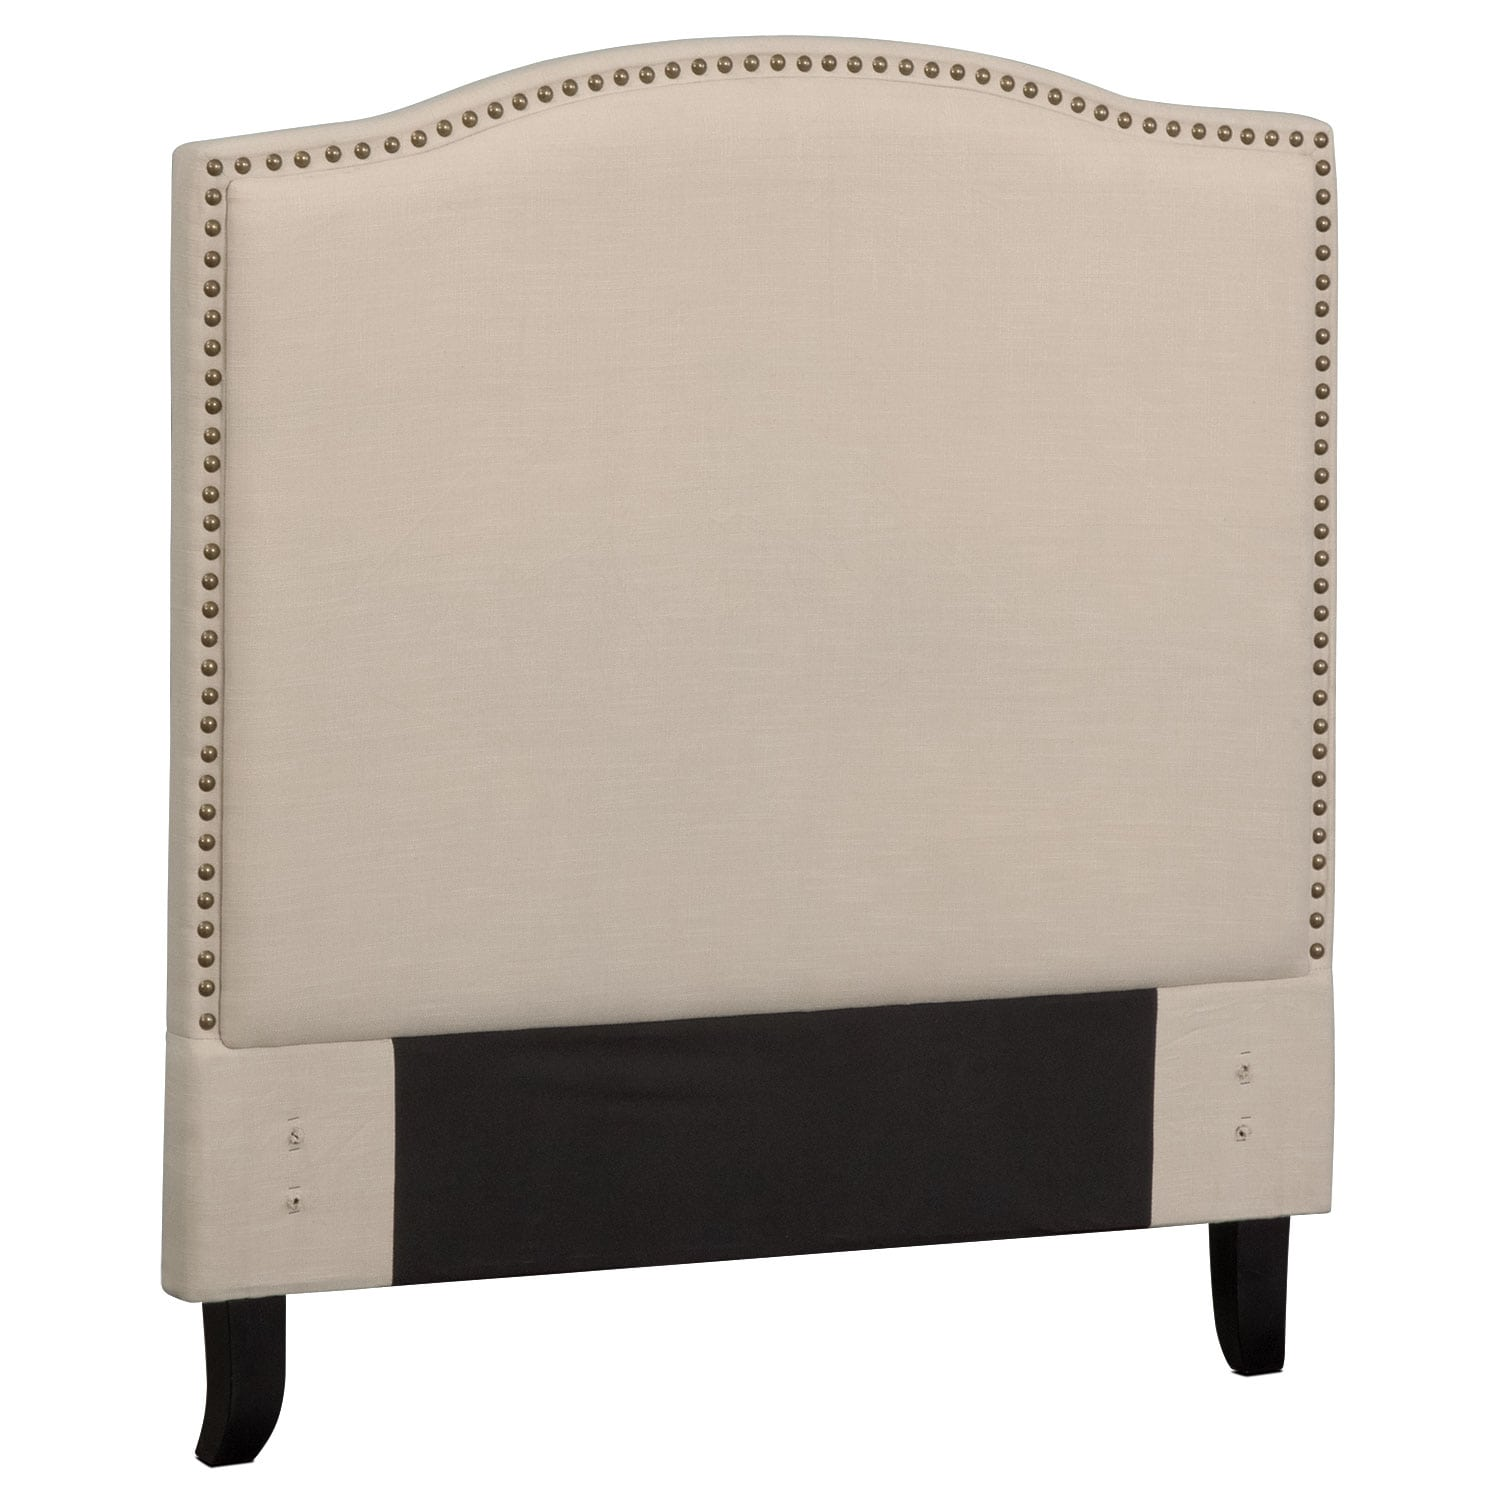 Bedroom Furniture - Aubrey Twin Upholstered Headboard - Sand